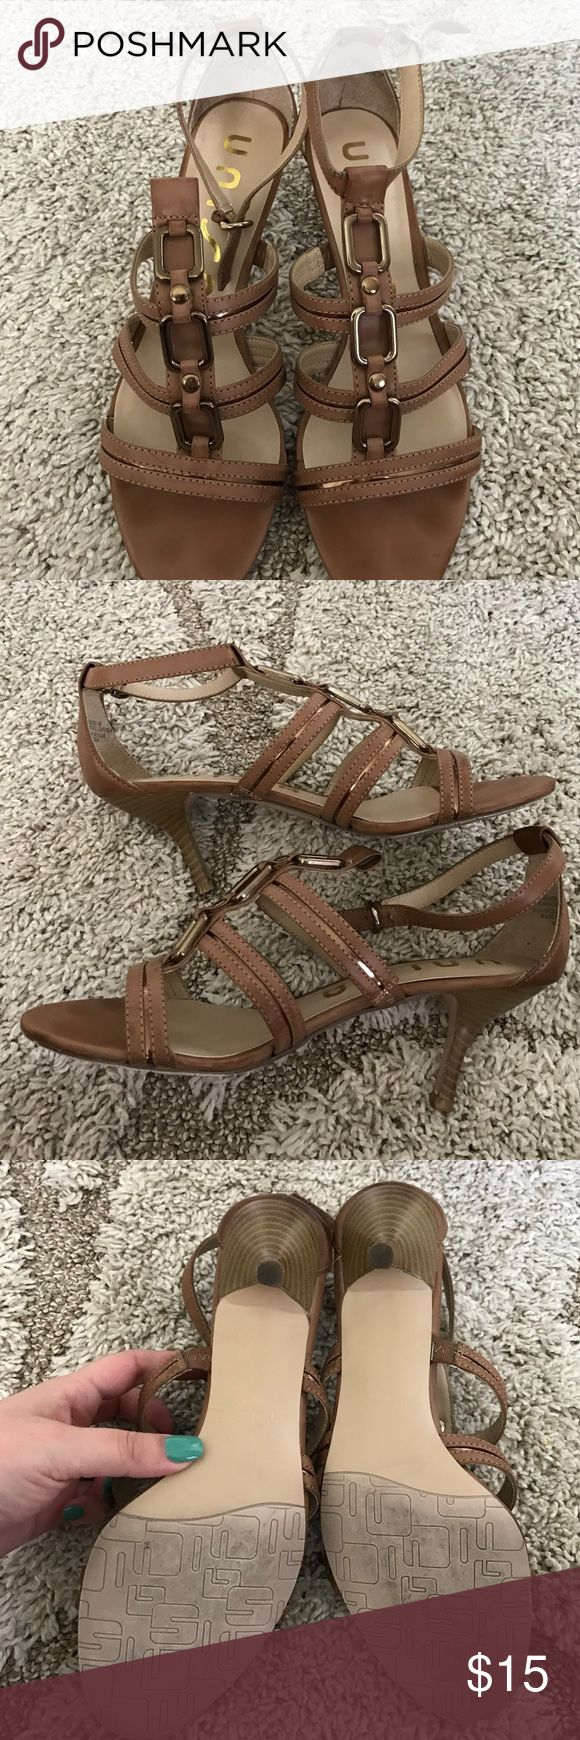 Unisa size 8 1/2 dressy sandal Pre-owned dressy sandal by Unisa. Size 8 1/2 . Small darkening of leather spot on right back sandal. Shown in pic. No scuffing on accented metal pieces. Unisa Shoes Heels